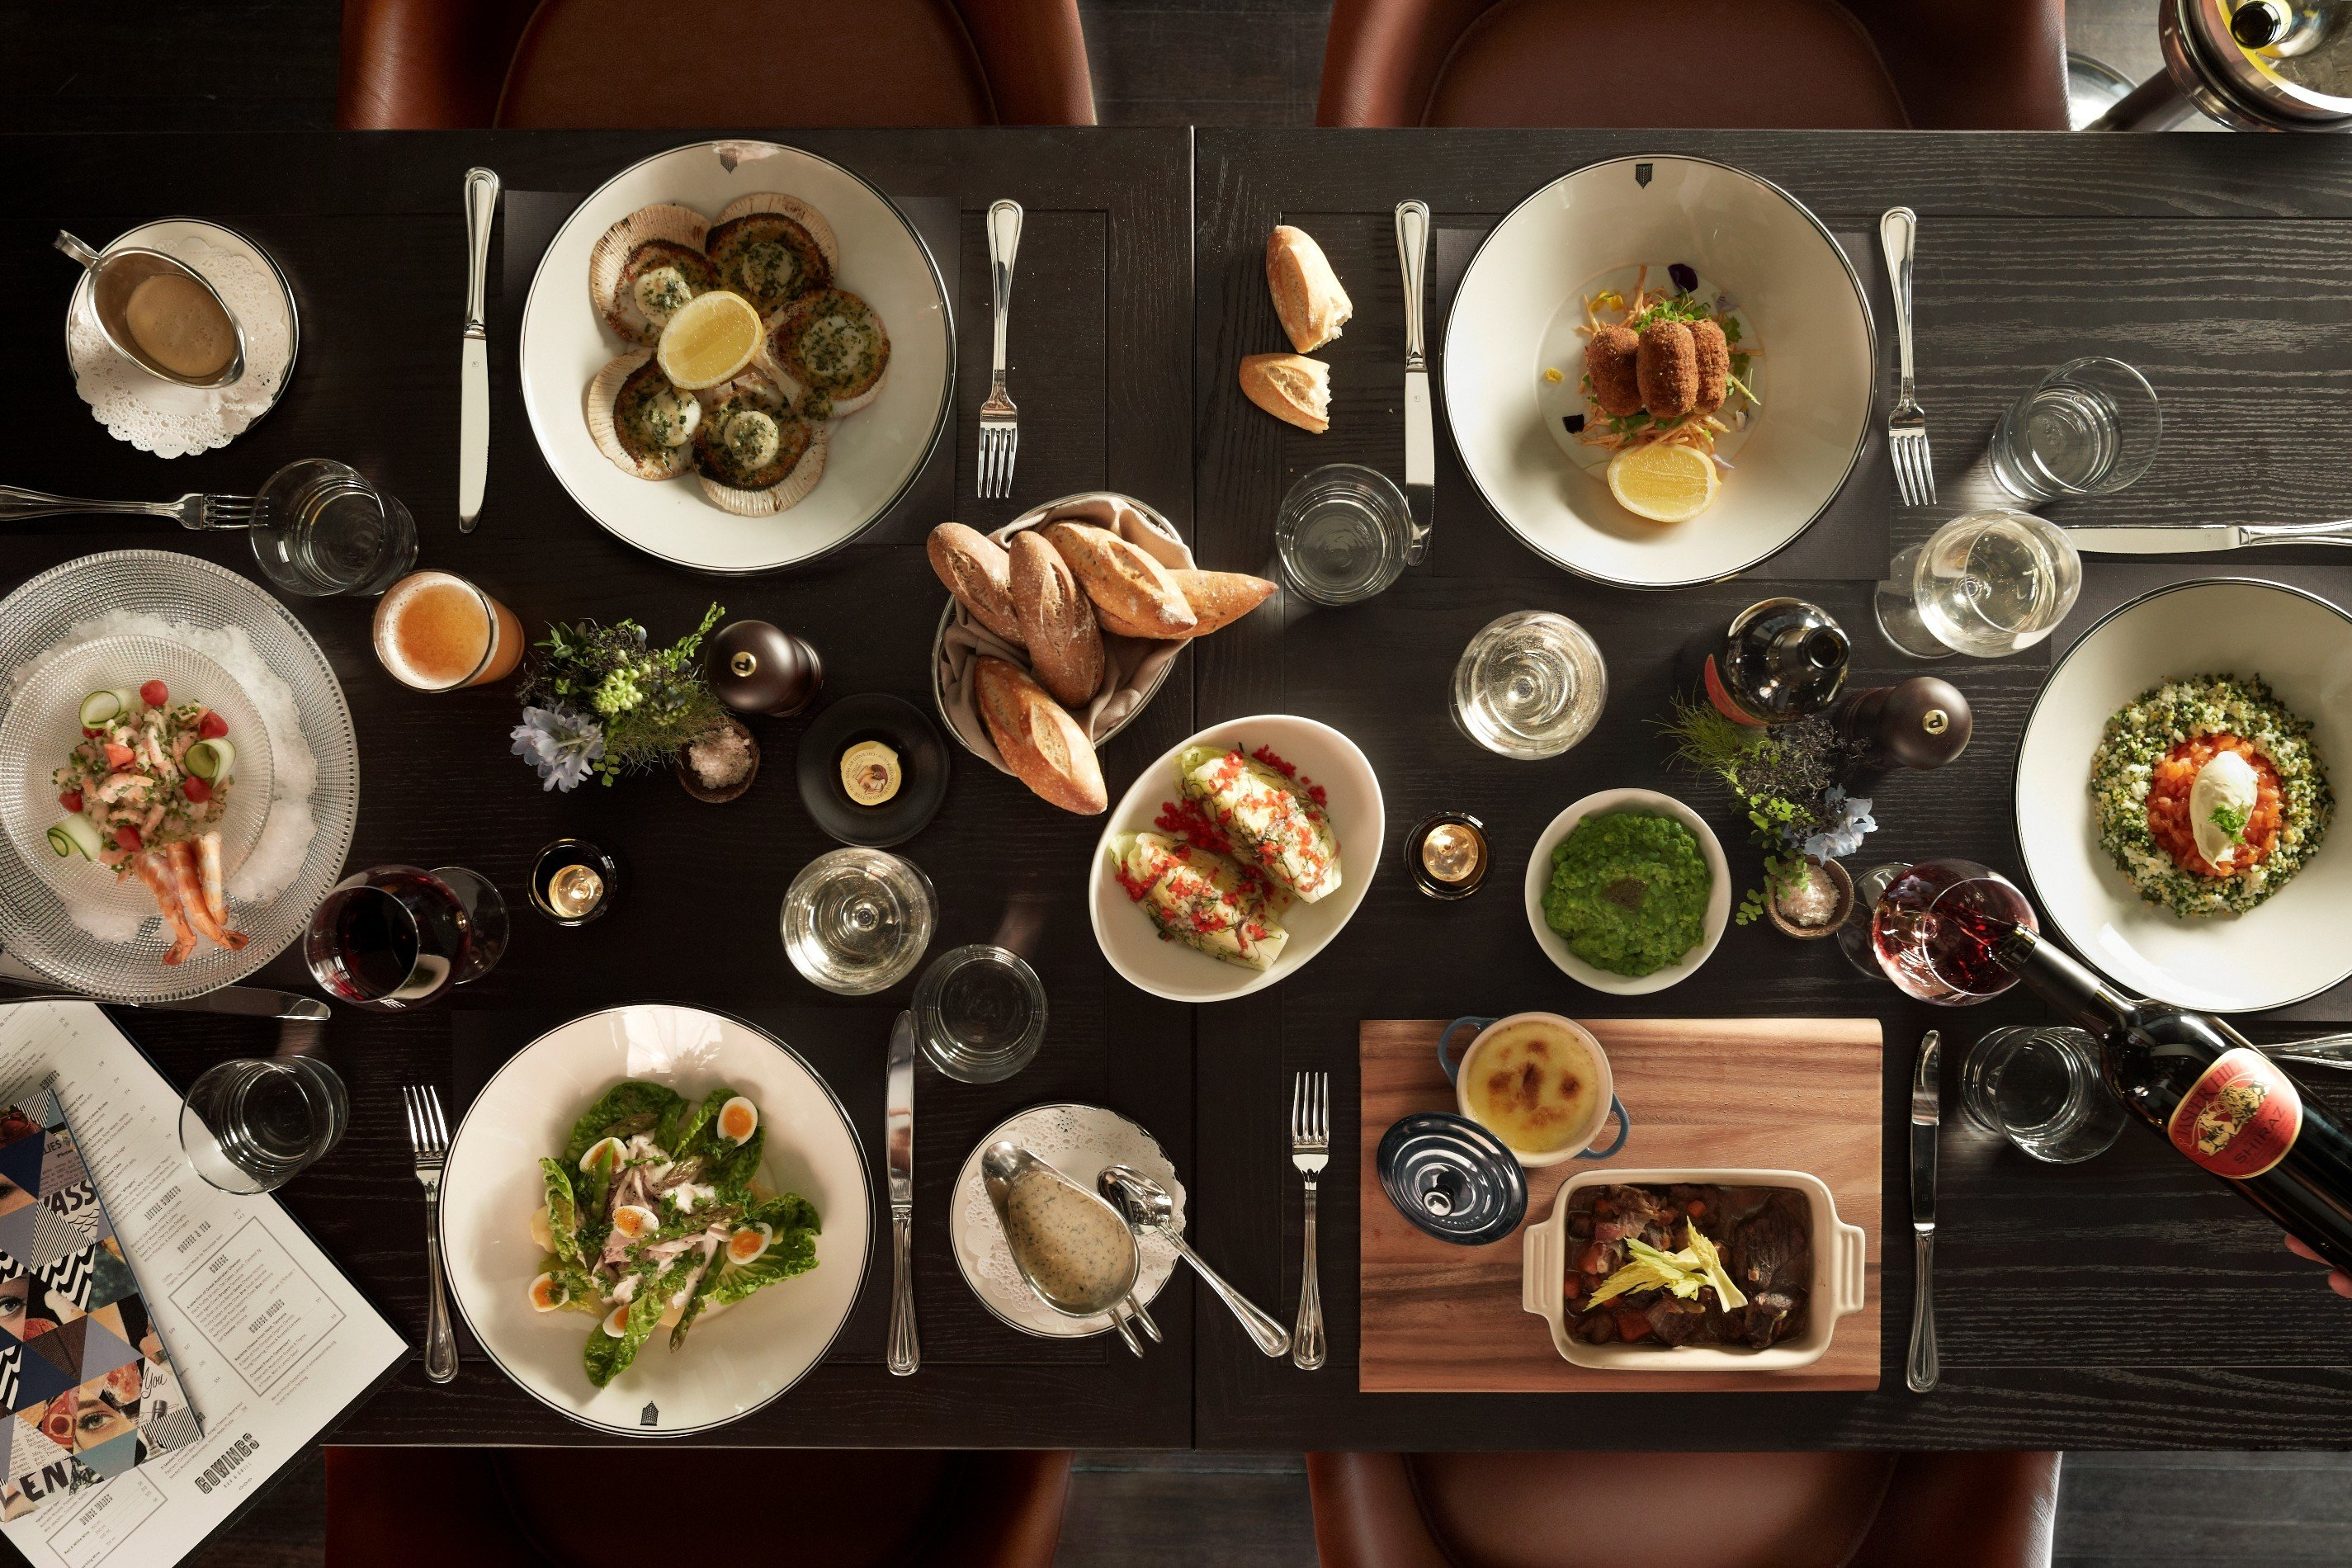 All-Inclusive Resorts Boutique Hotels Hotels Romance different indoor bunch wooden food meal several items sense dish various variety set wood